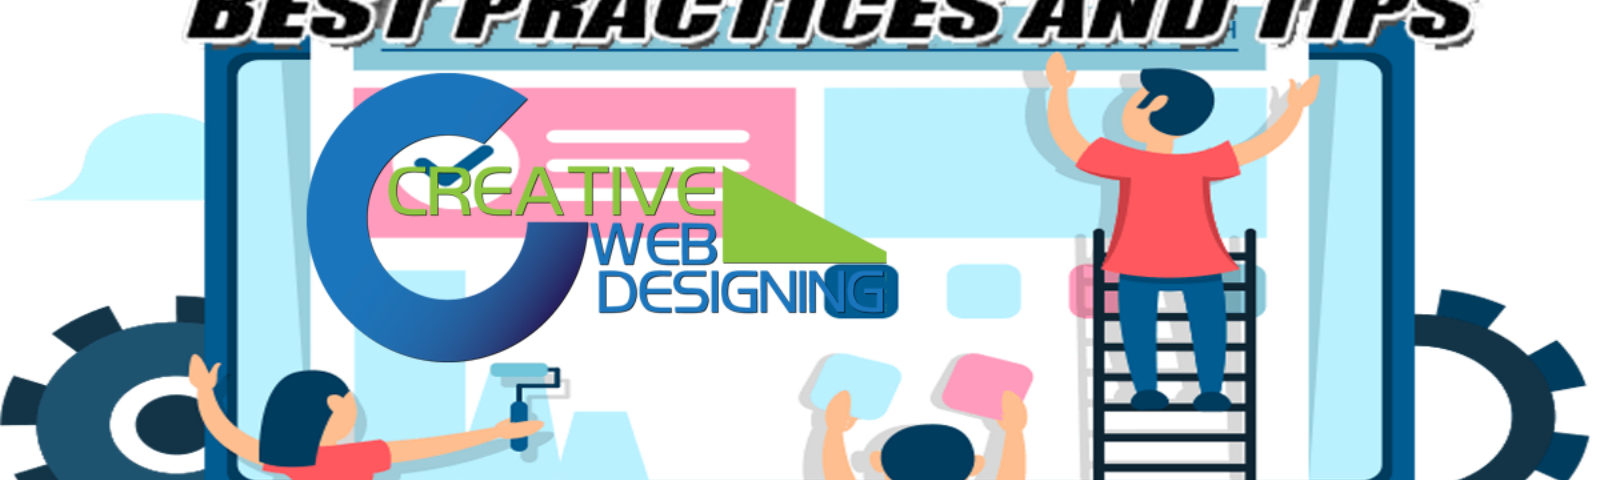 7 Important Tips For Web Design